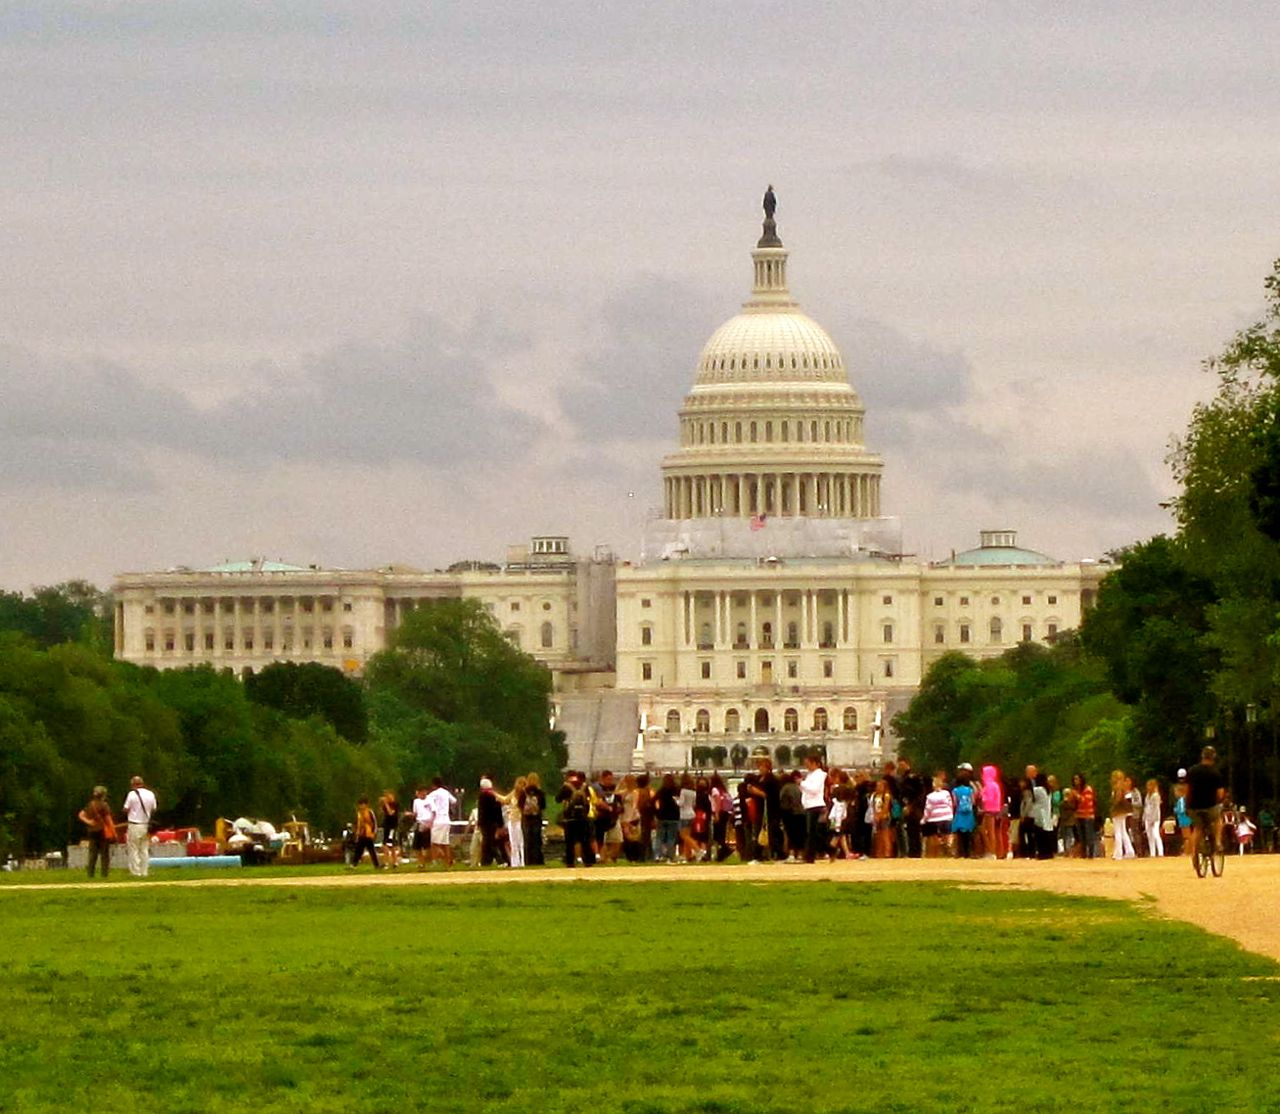 Wordless Wednesday: The Nation's Capital